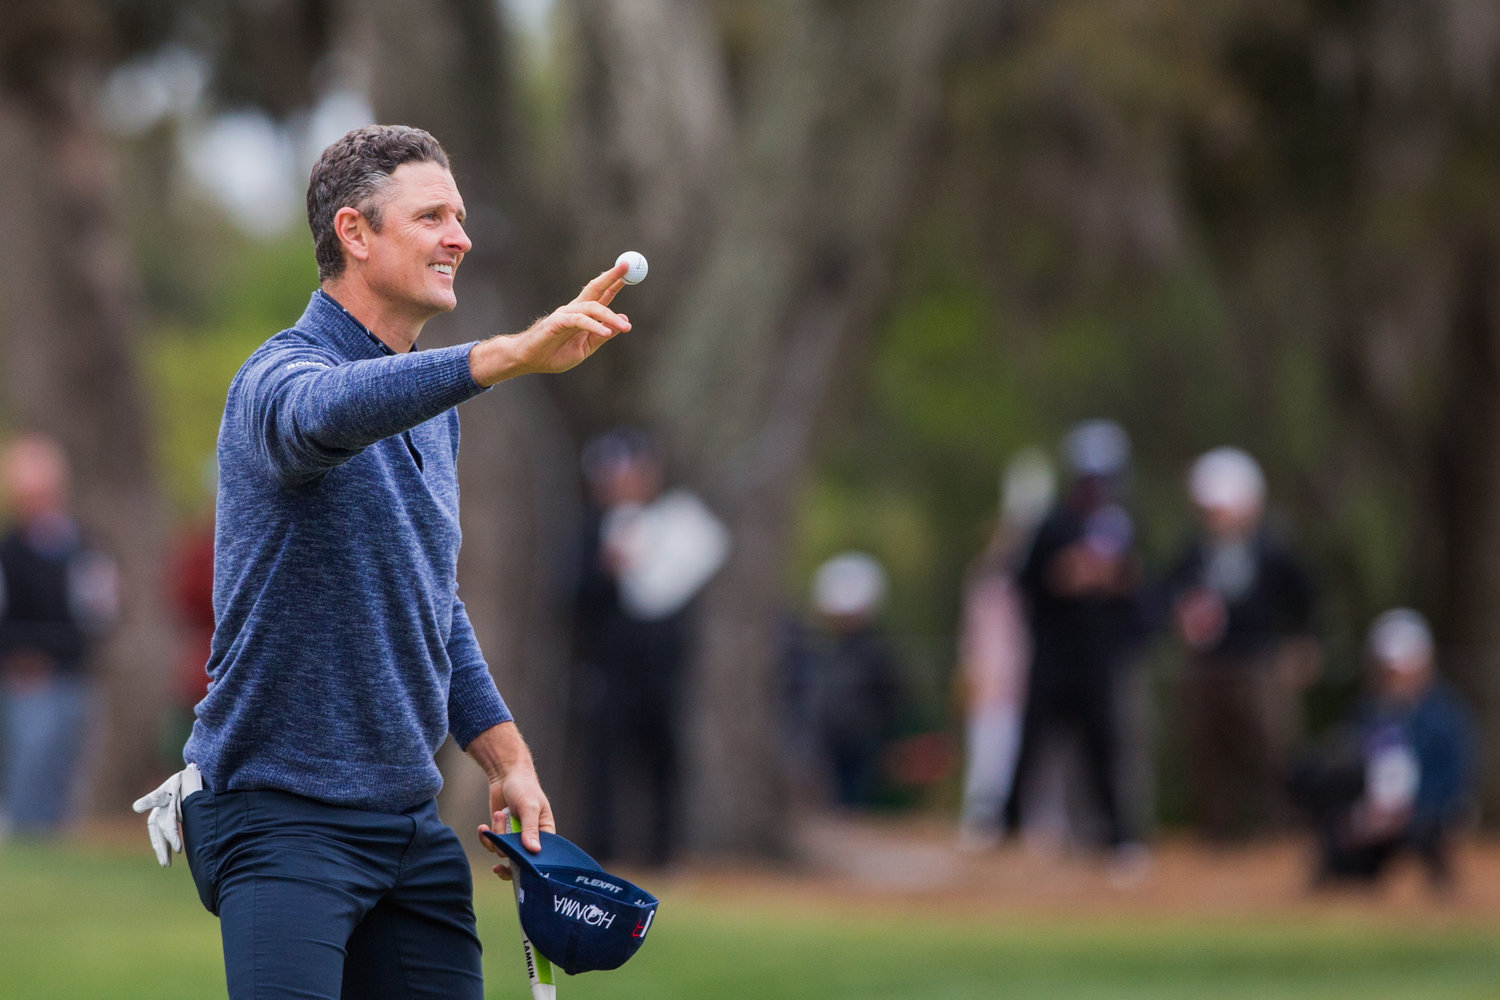 Justin Rose waves to fans Sunday at THE PLAYERS.